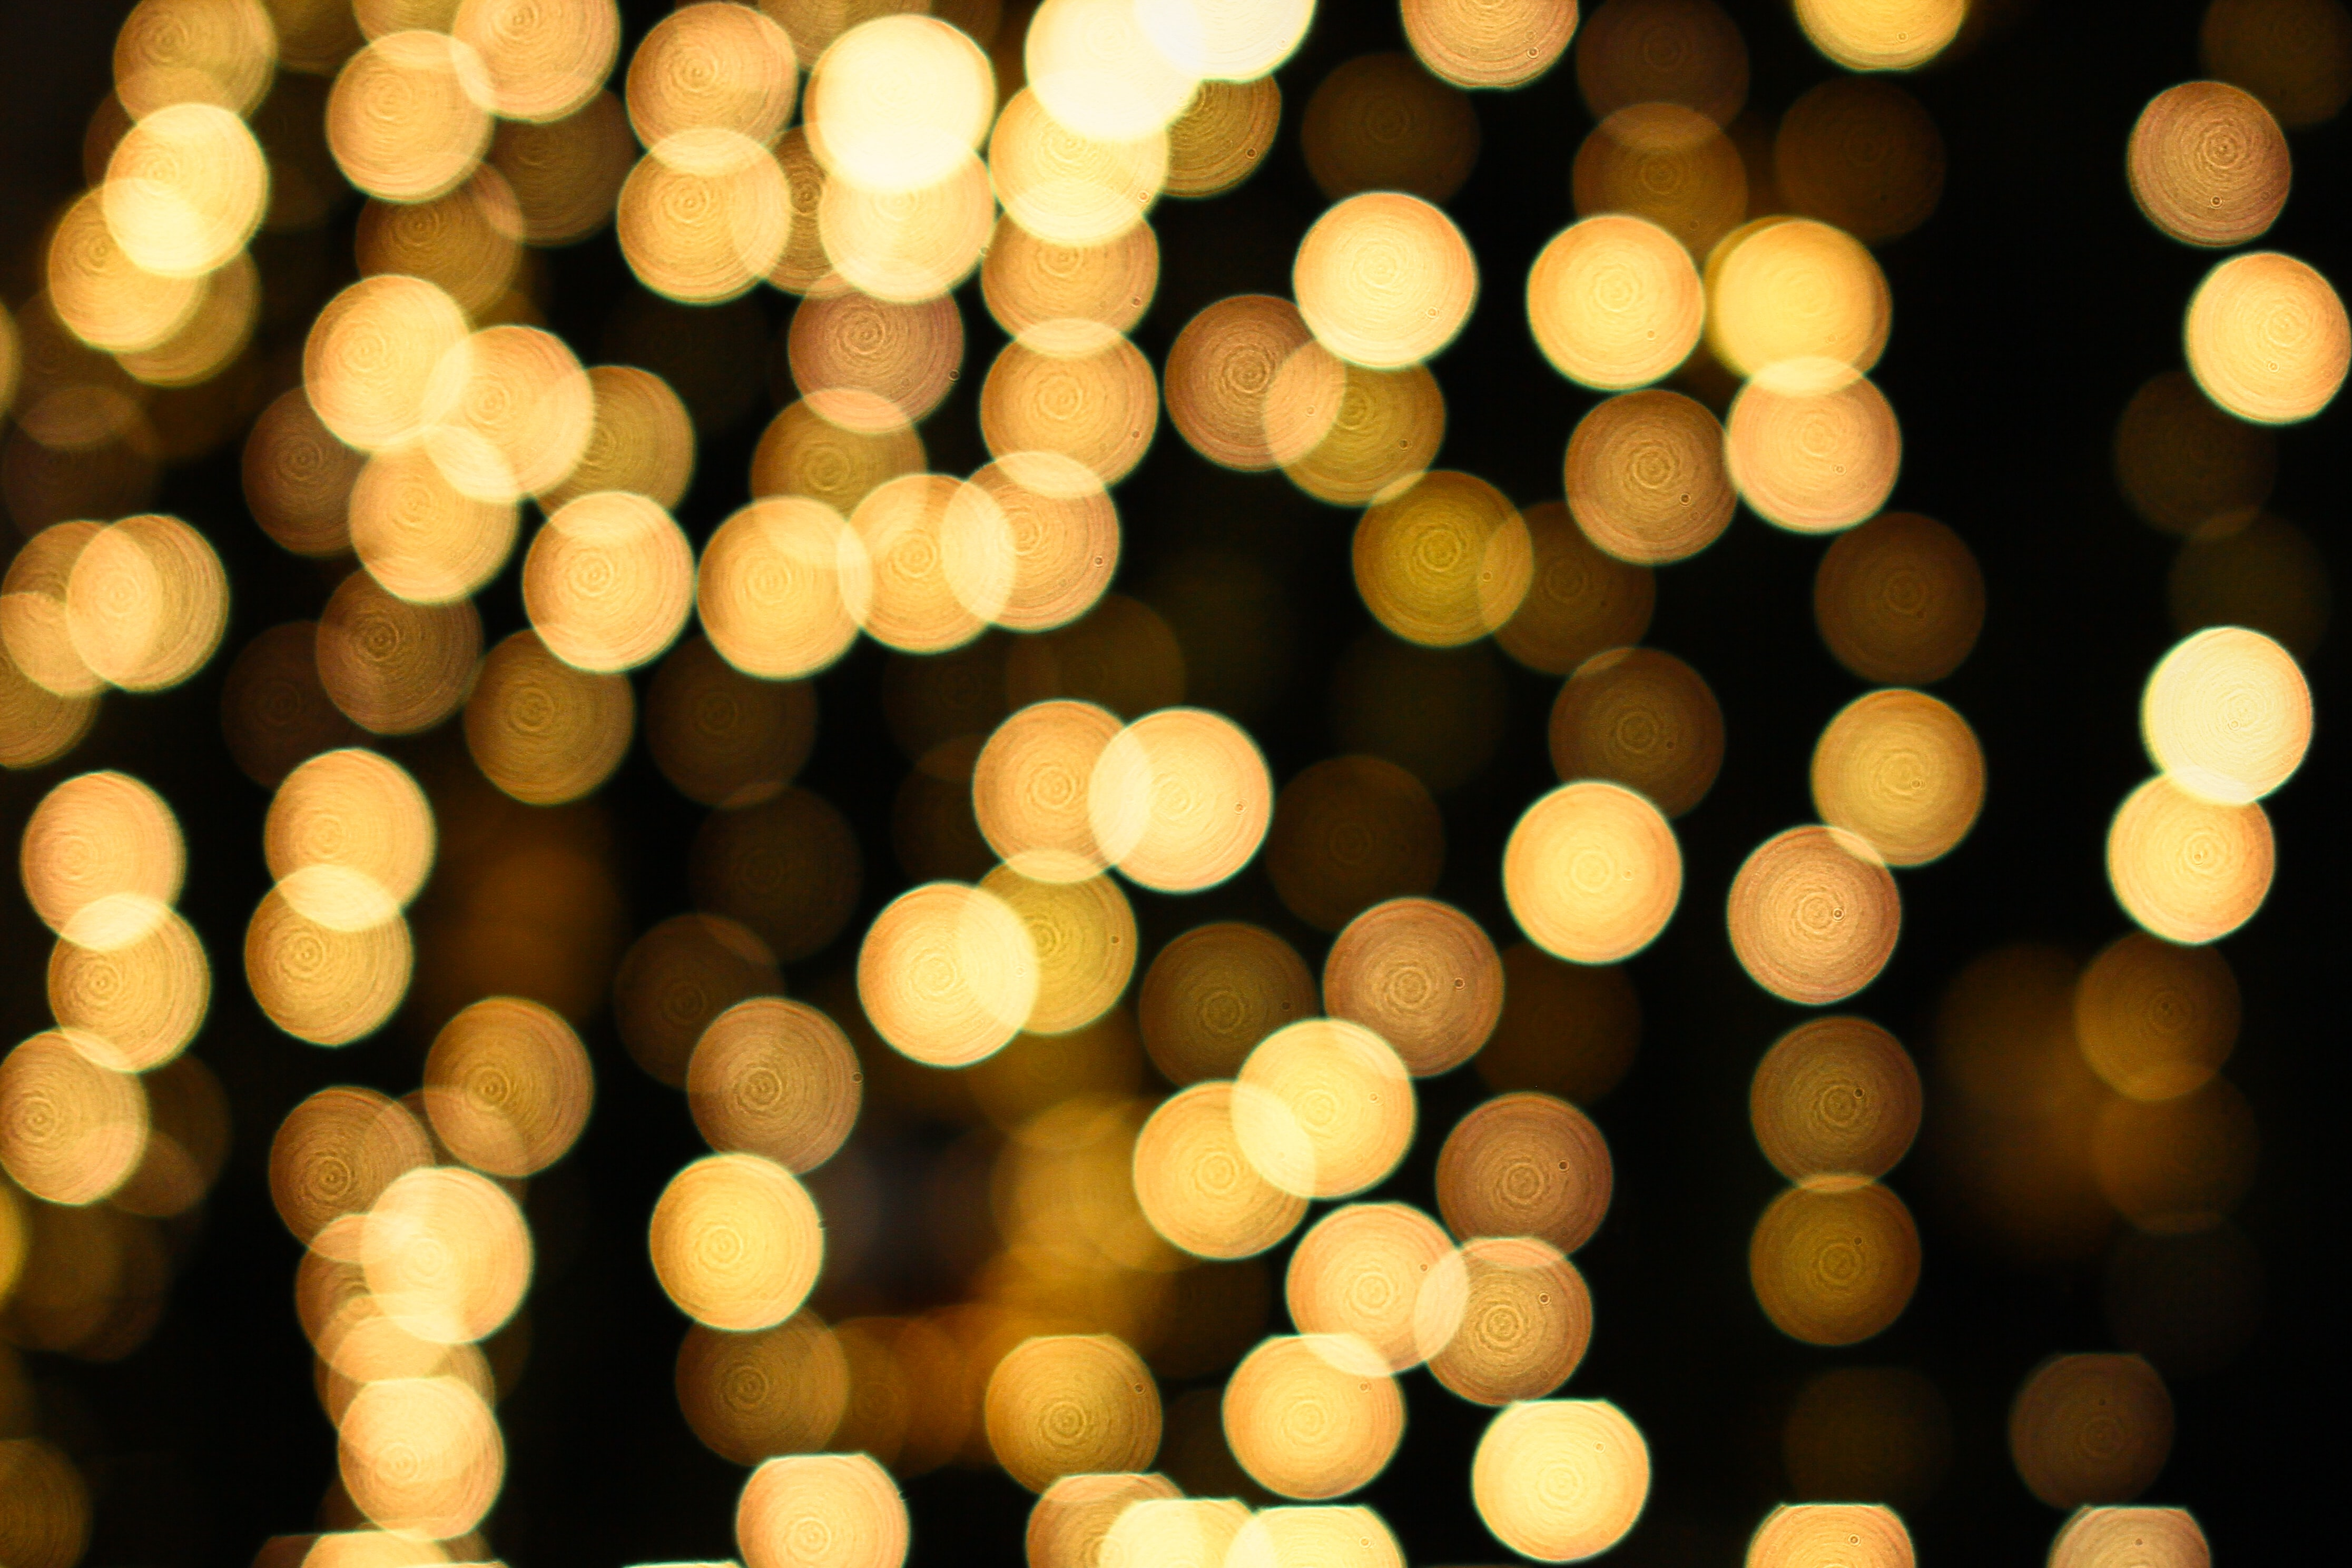 bokeh photography of yellow lights